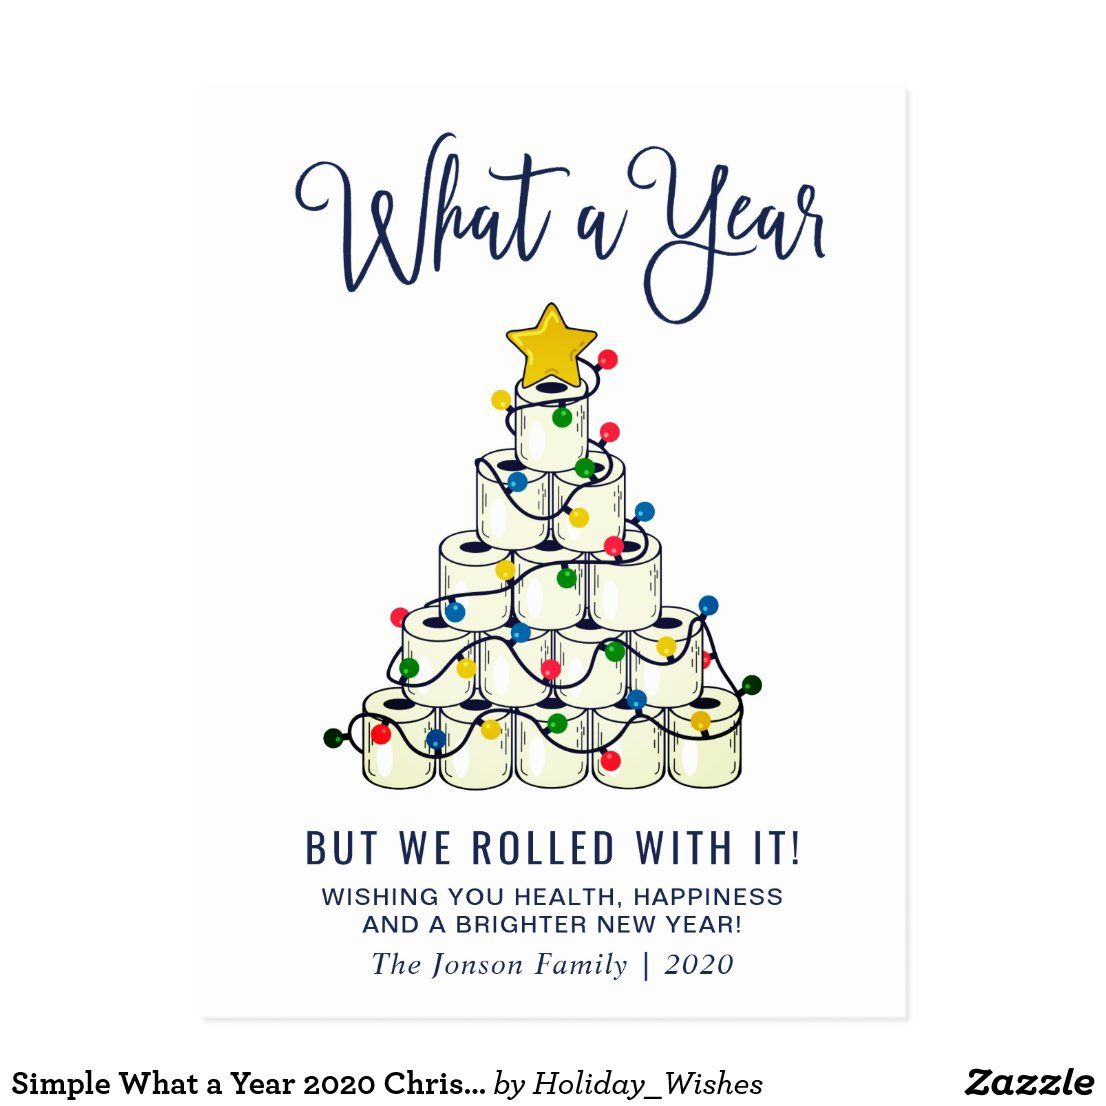 Simple What a Year 2020 Christmas Holiday Greeting Postcard | Zazzle.com